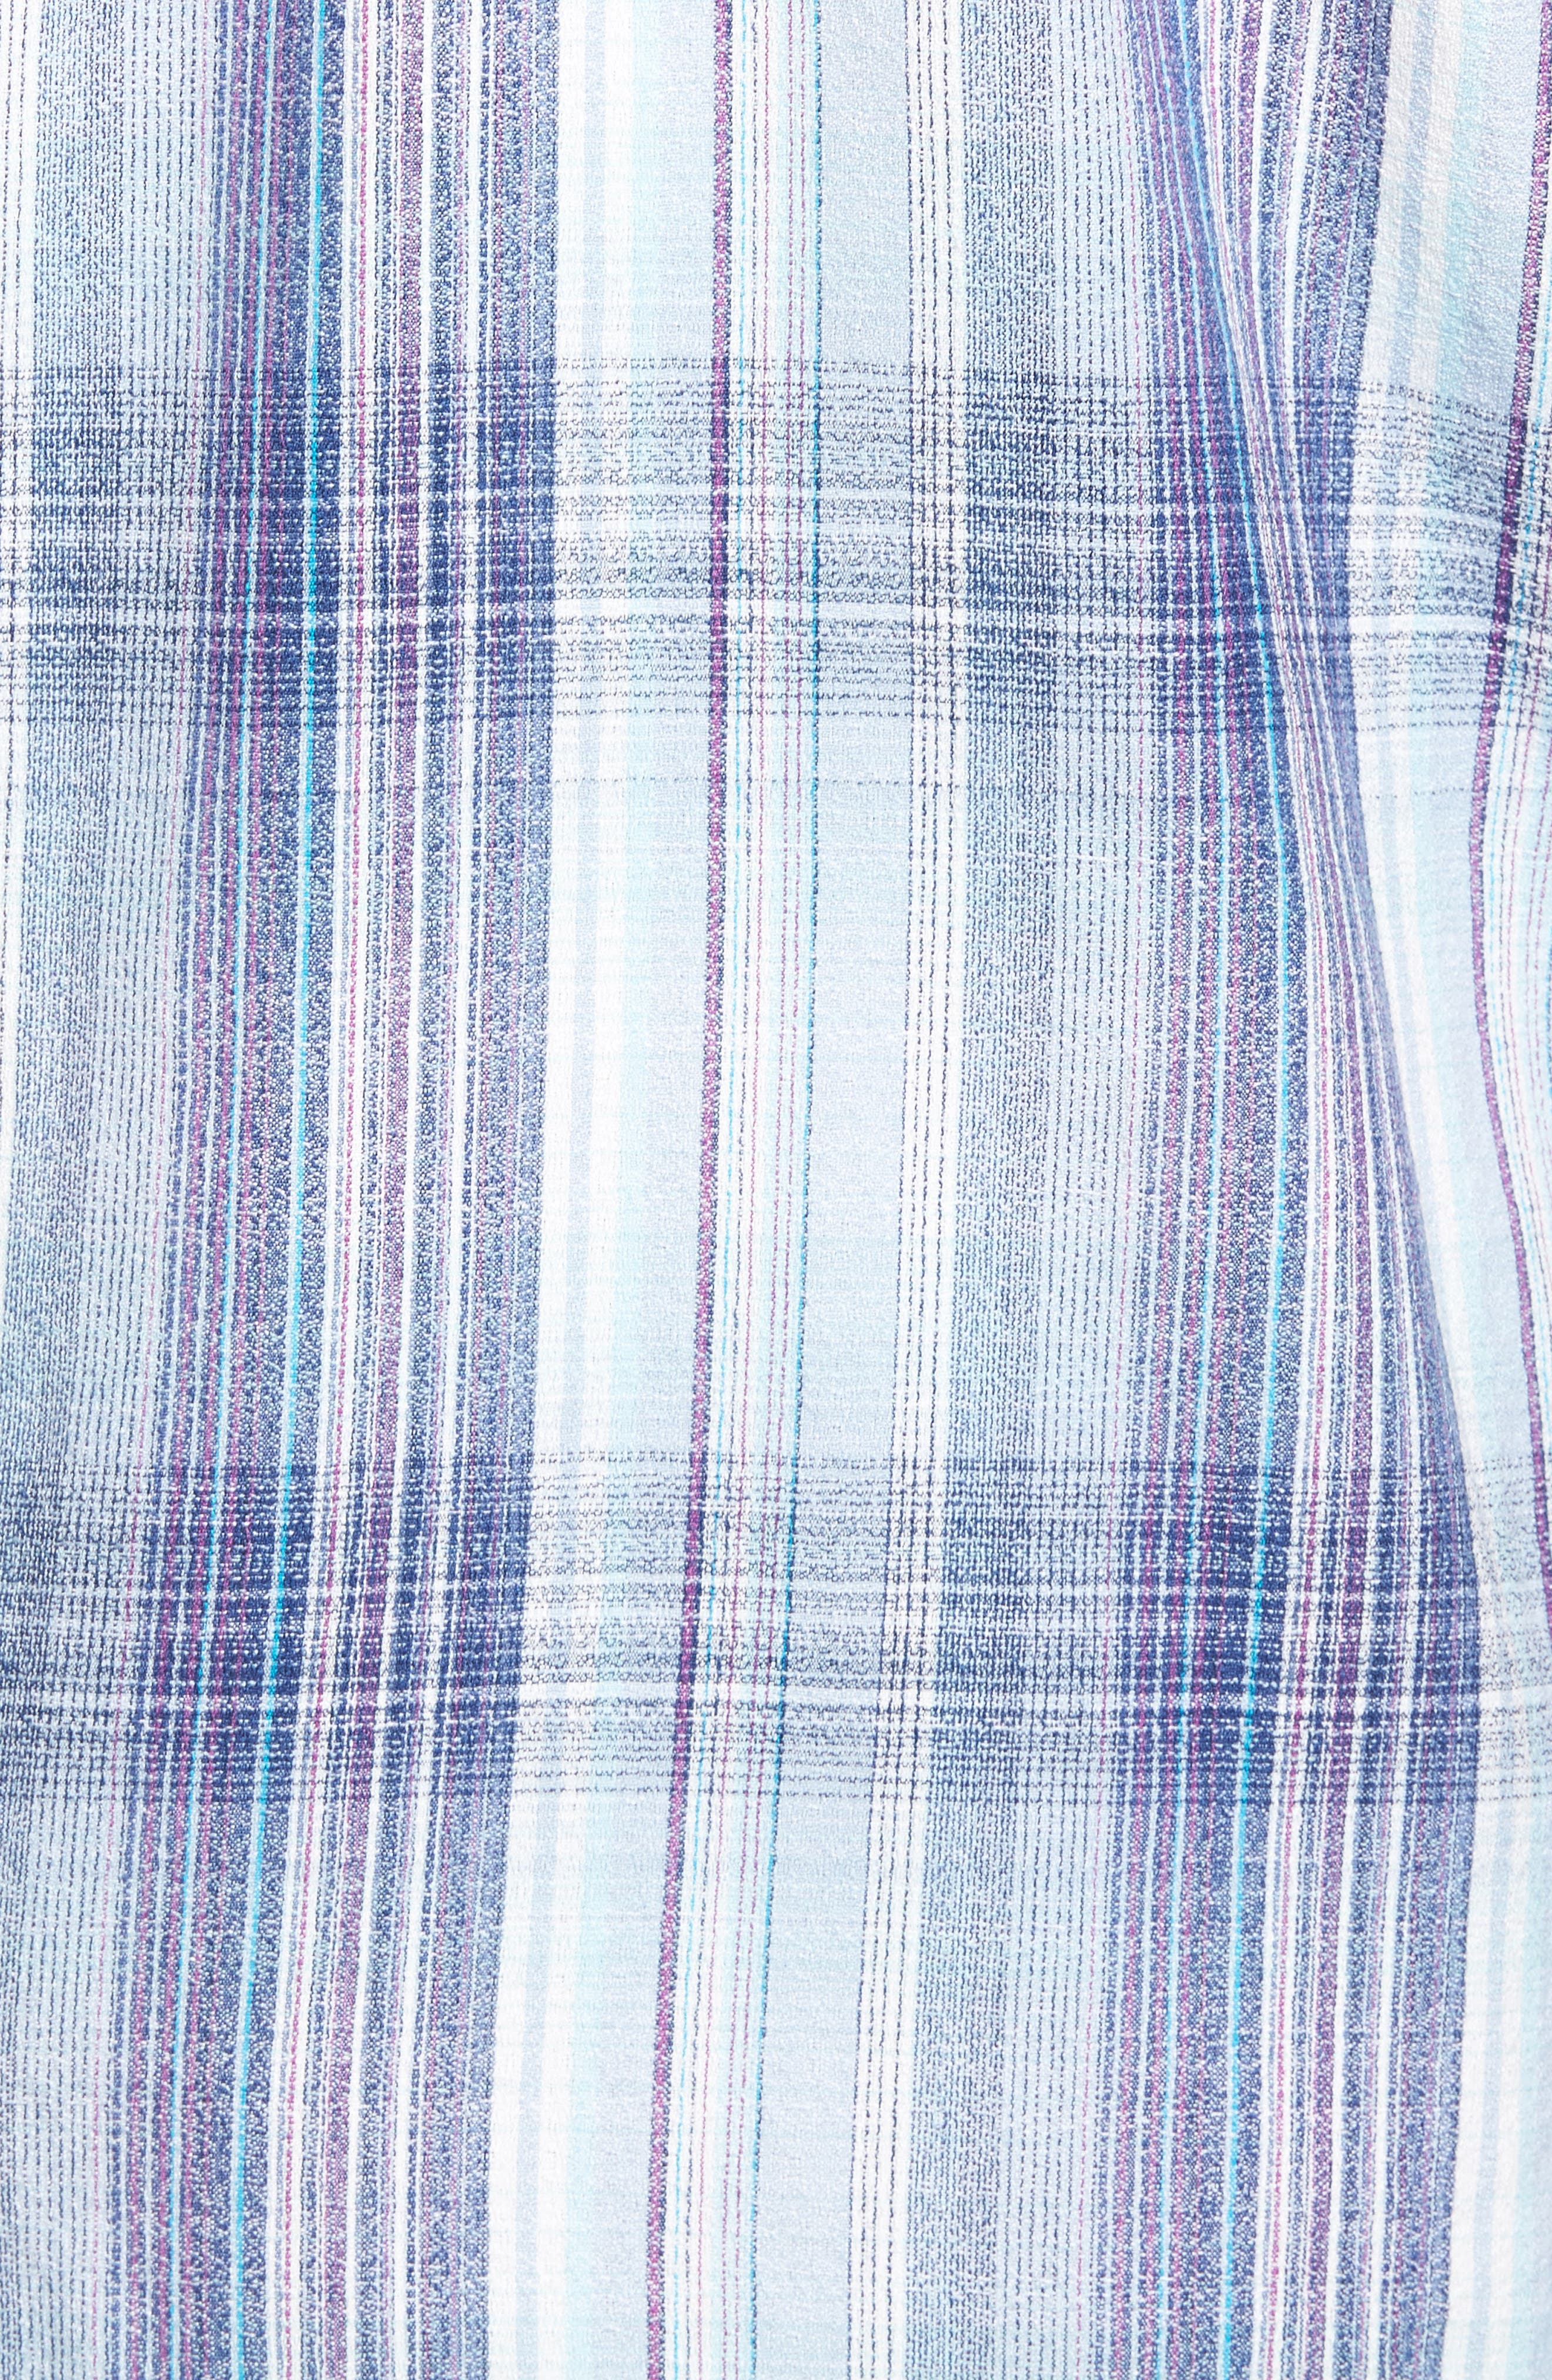 TOMMY BAHAMA,                             Banyan Cay Plaid Silk Blend Camp Shirt,                             Alternate thumbnail 5, color,                             401